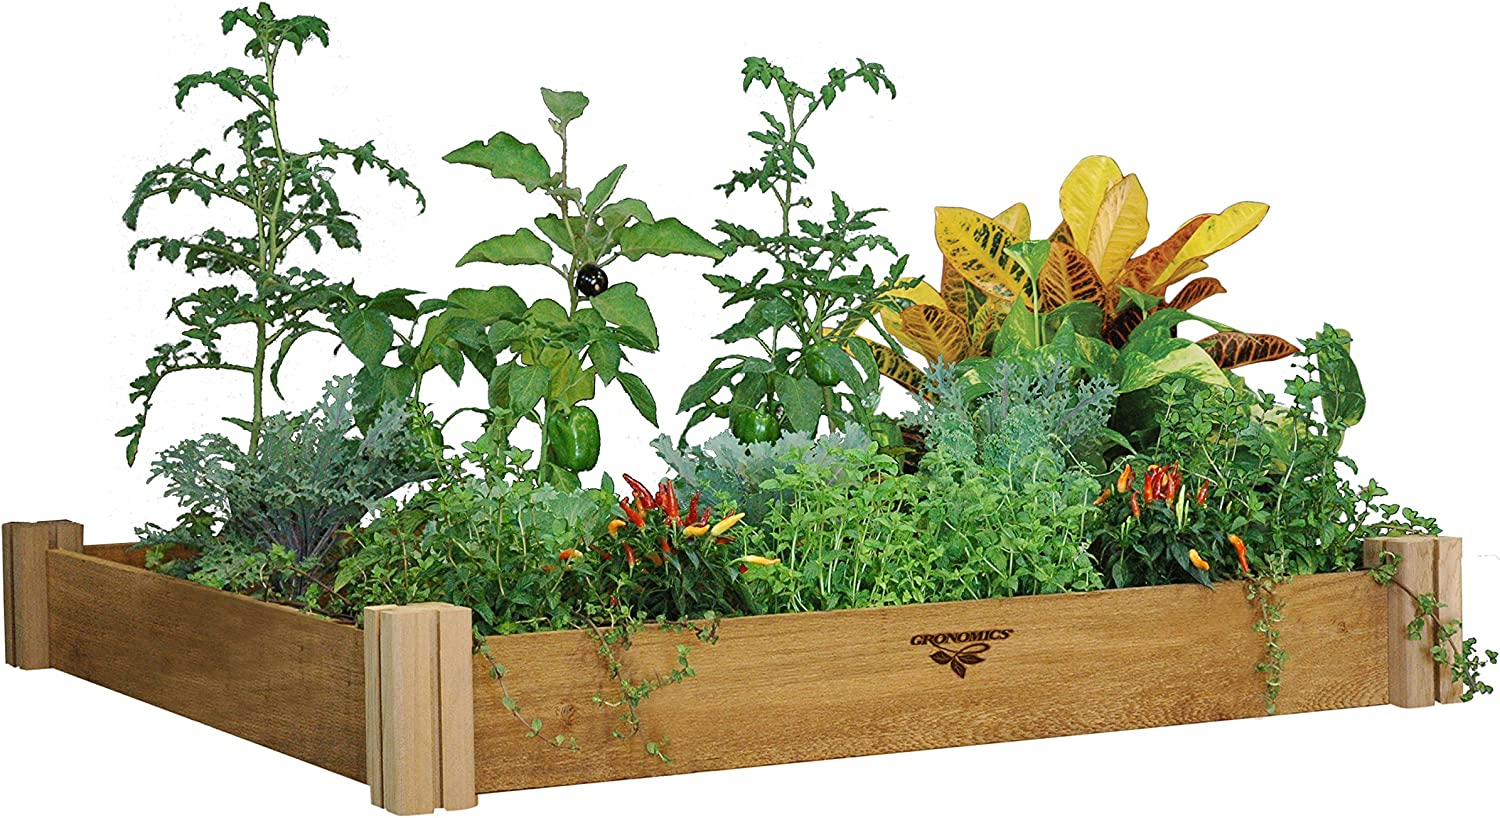 Gronomics MRGB-1L 48-48 48-Inch by 48-Inch by 6-1 2-Inch Modular Raised Garden Bed, Unfinished